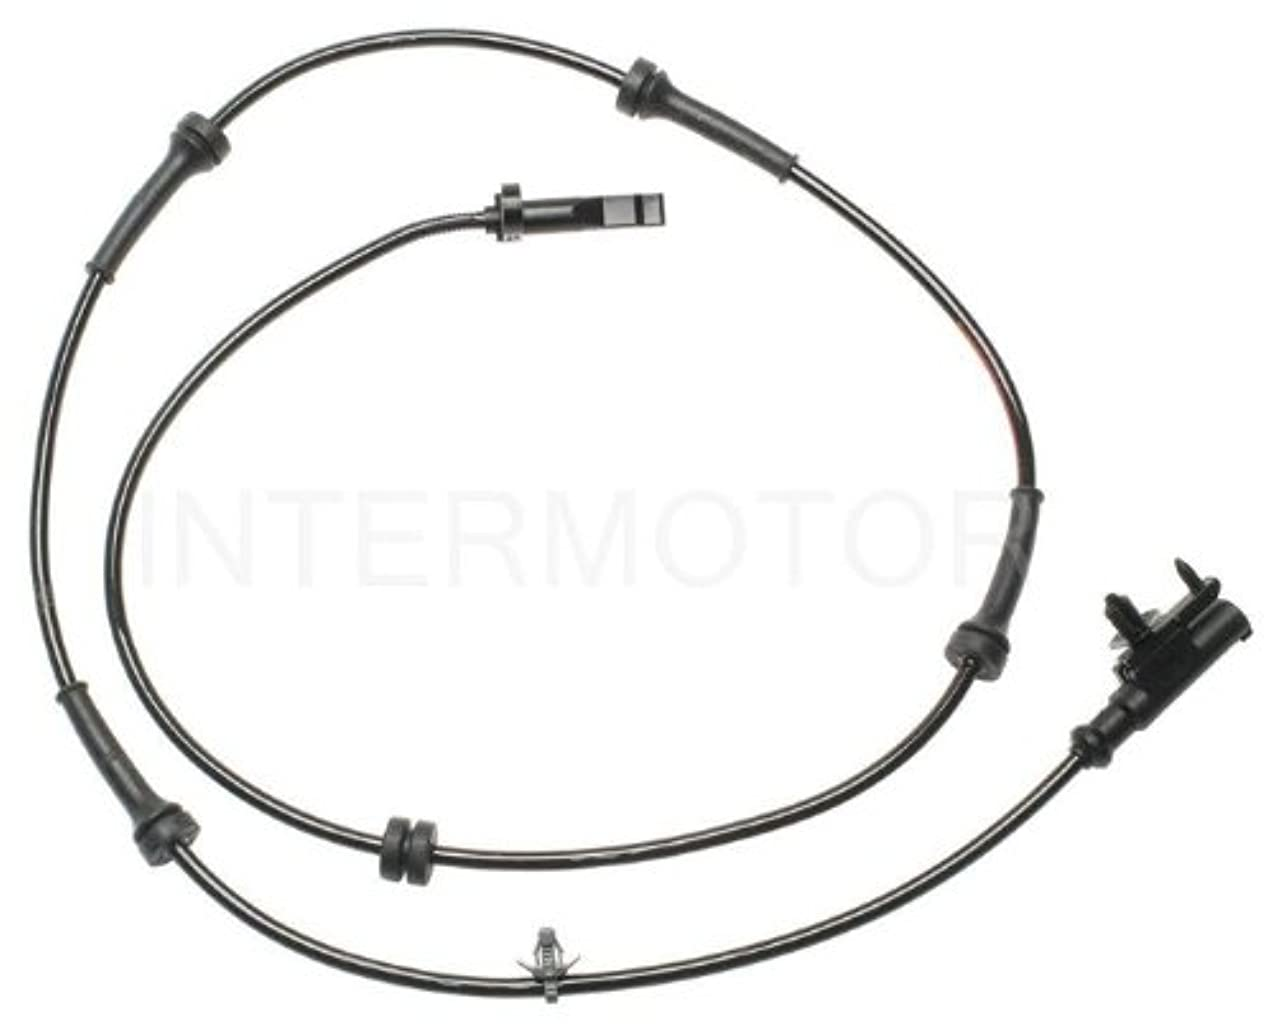 Standard Motor Products ALS1653 ABS Wheel Speed Sensor Wire Harness